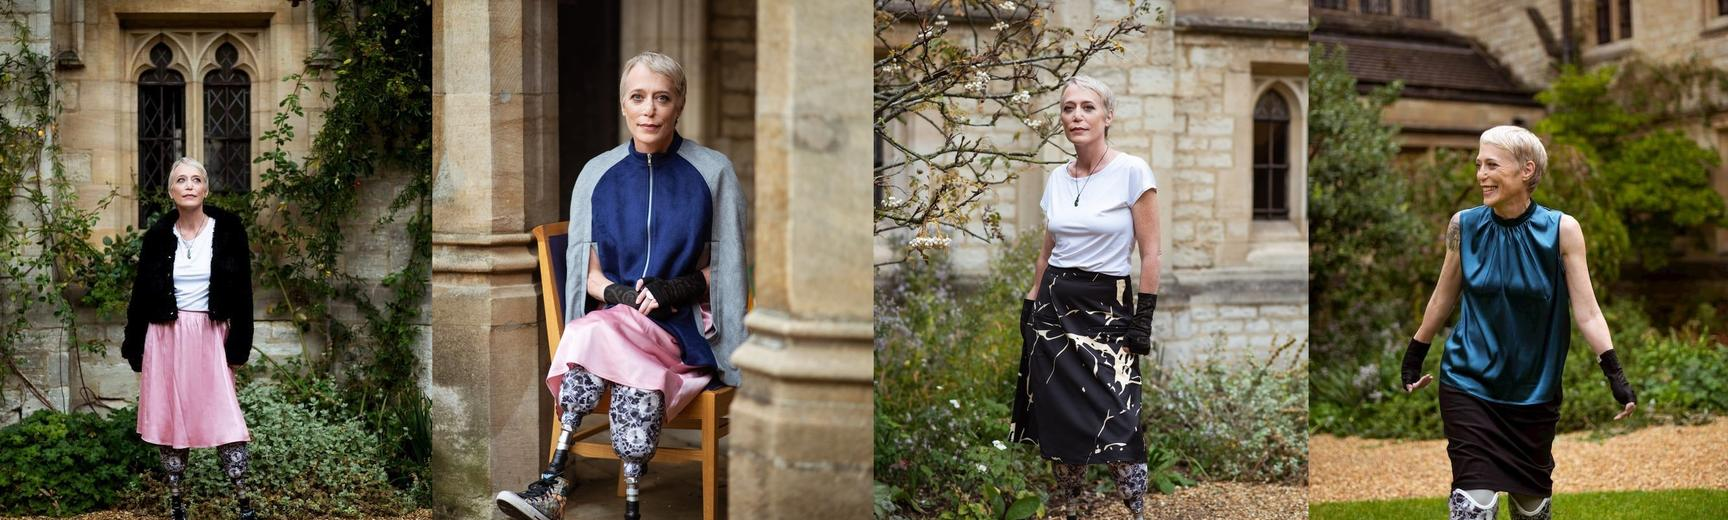 A collage of four photos of Liz, showing her in the College quad showcasing various skirts and blouses.